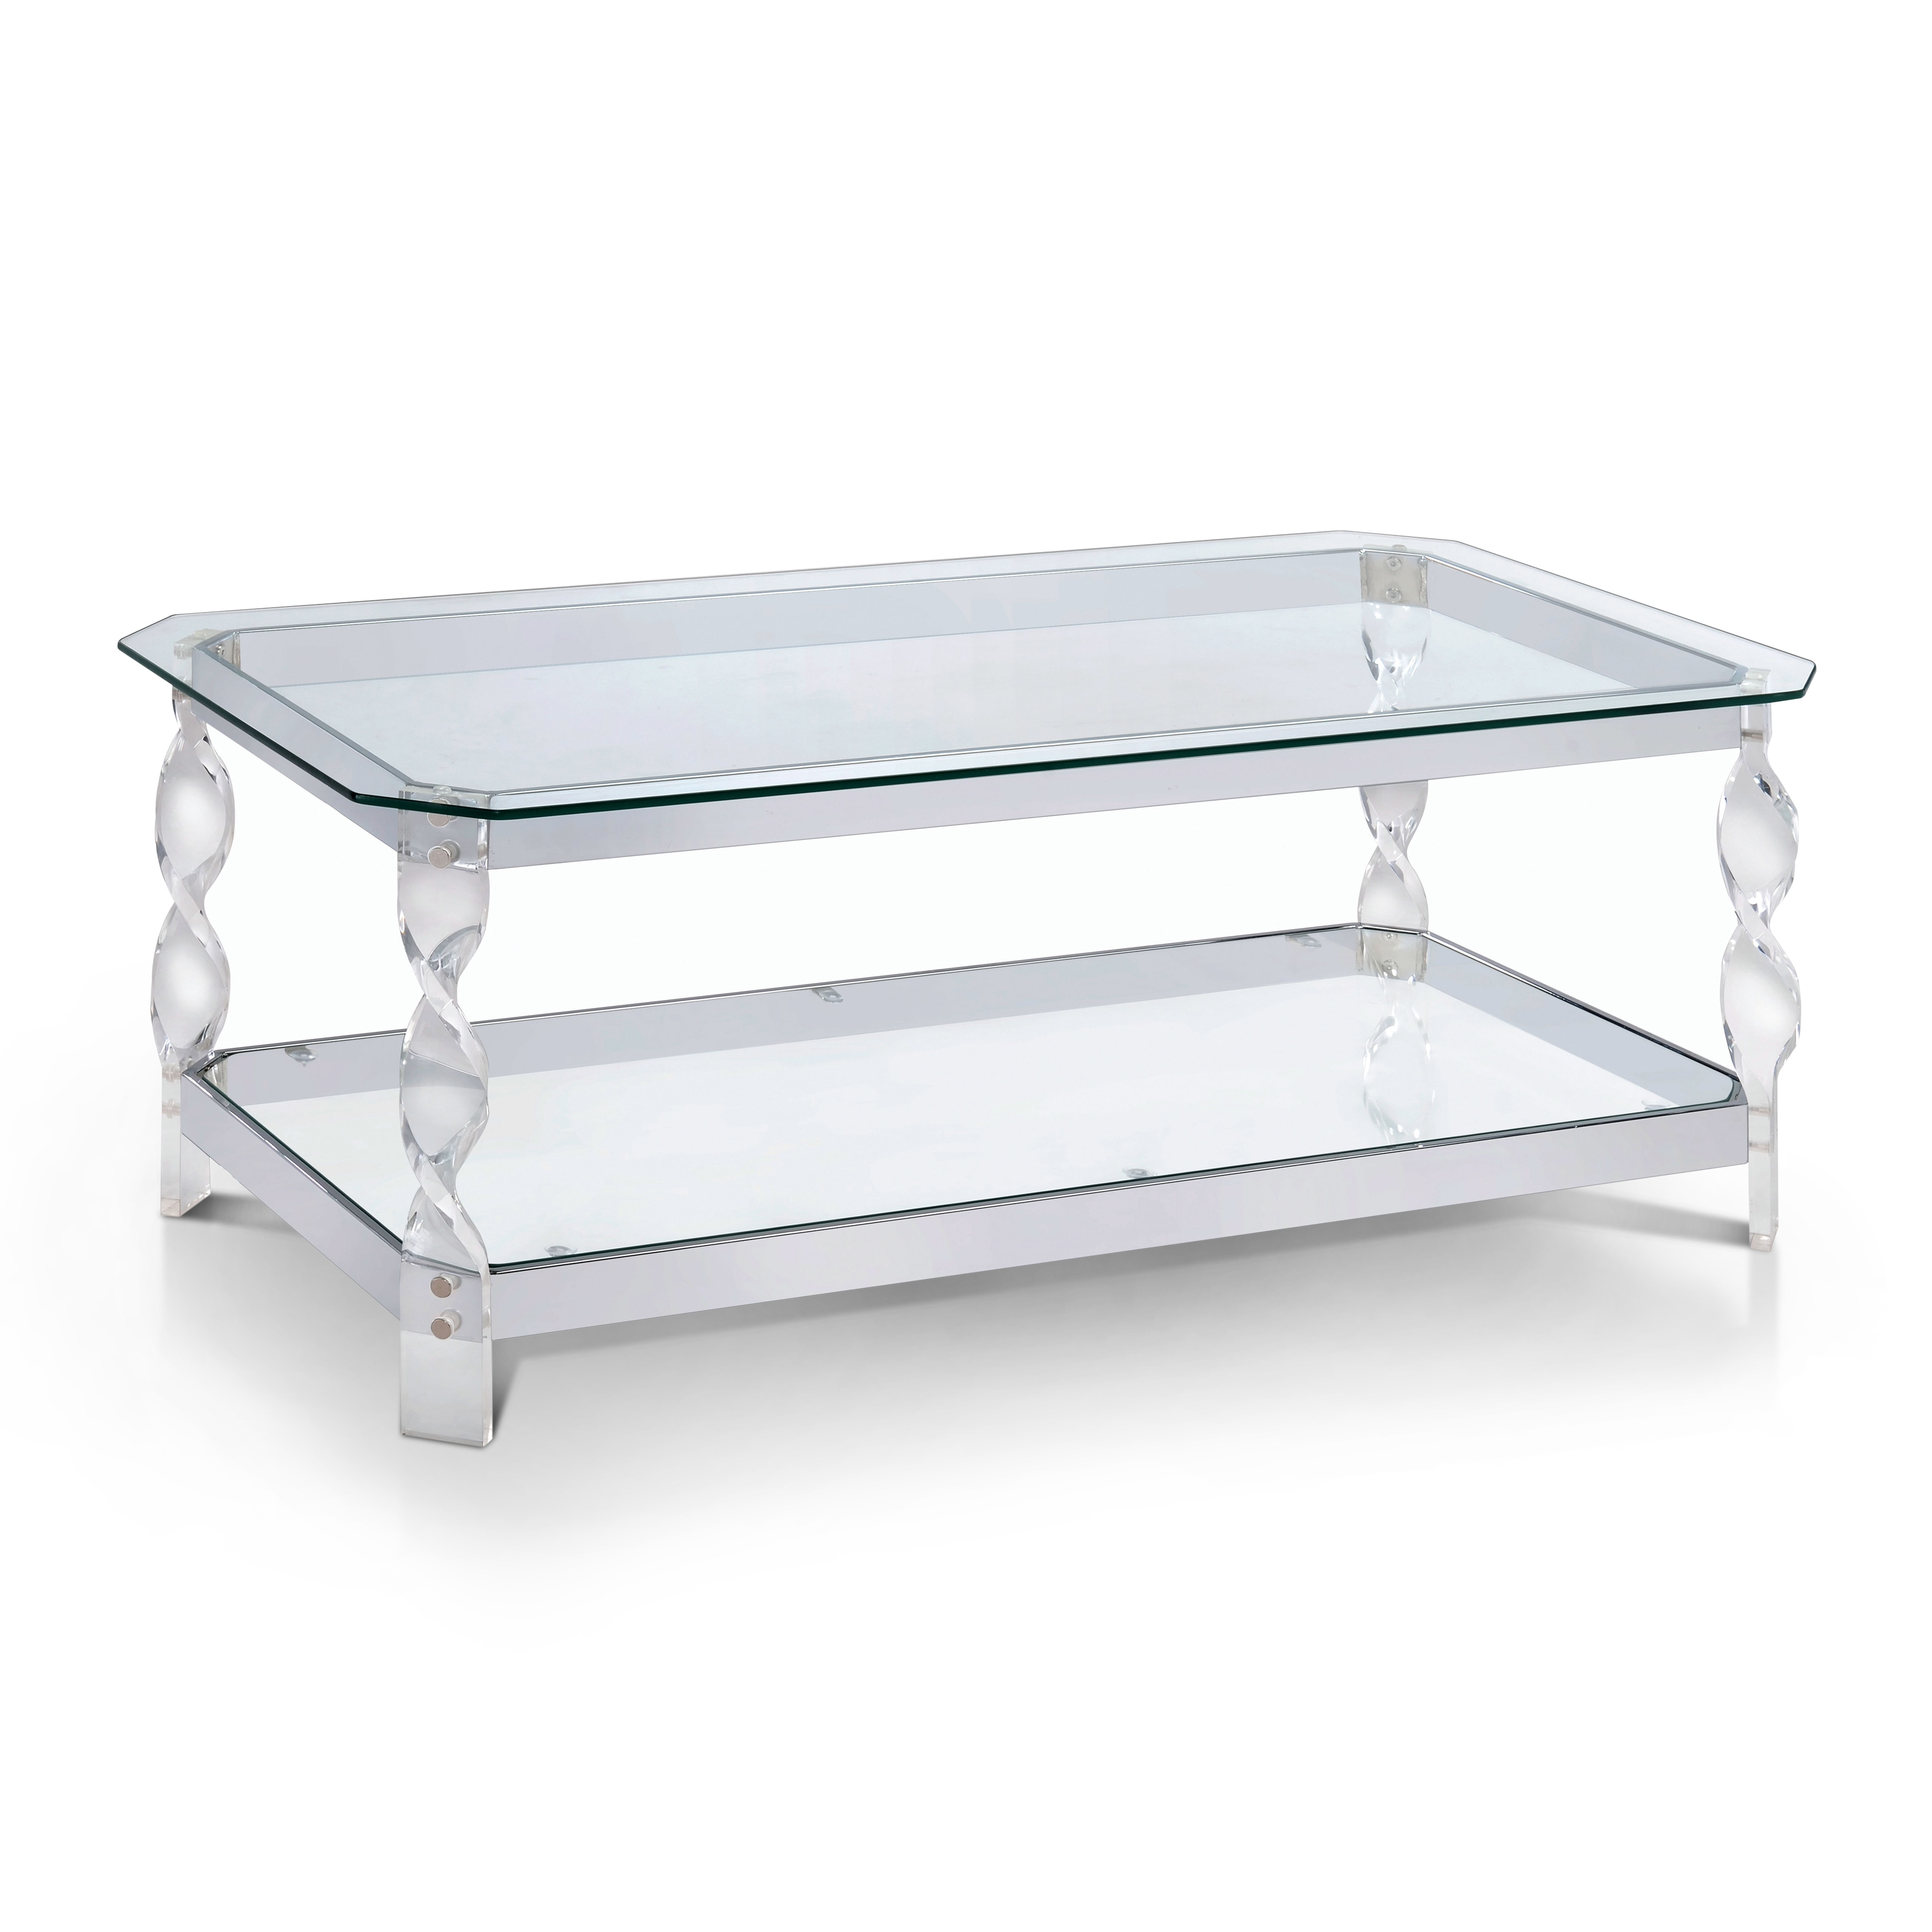 Furniture of America Monrow Contemporary Clear Glass Chrome Coffee